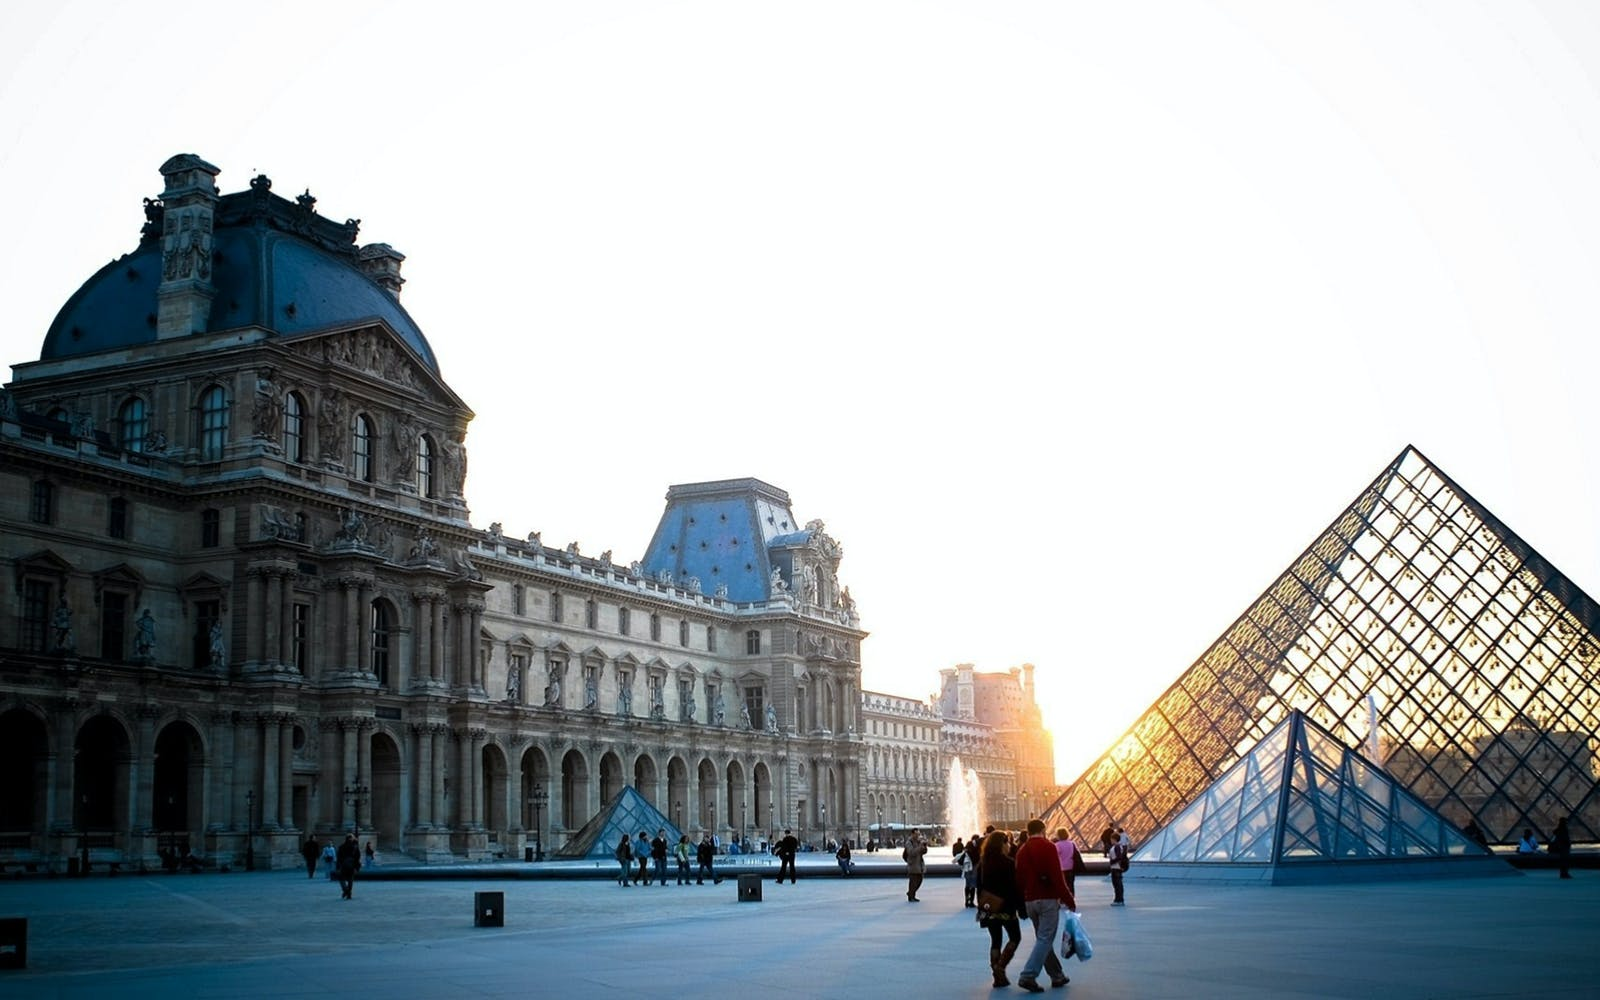 Fast Track Guided Tour of Louvre Museum, Notre Dame + Eiffel Tower Lunch with Complimentary Seine River Cruise